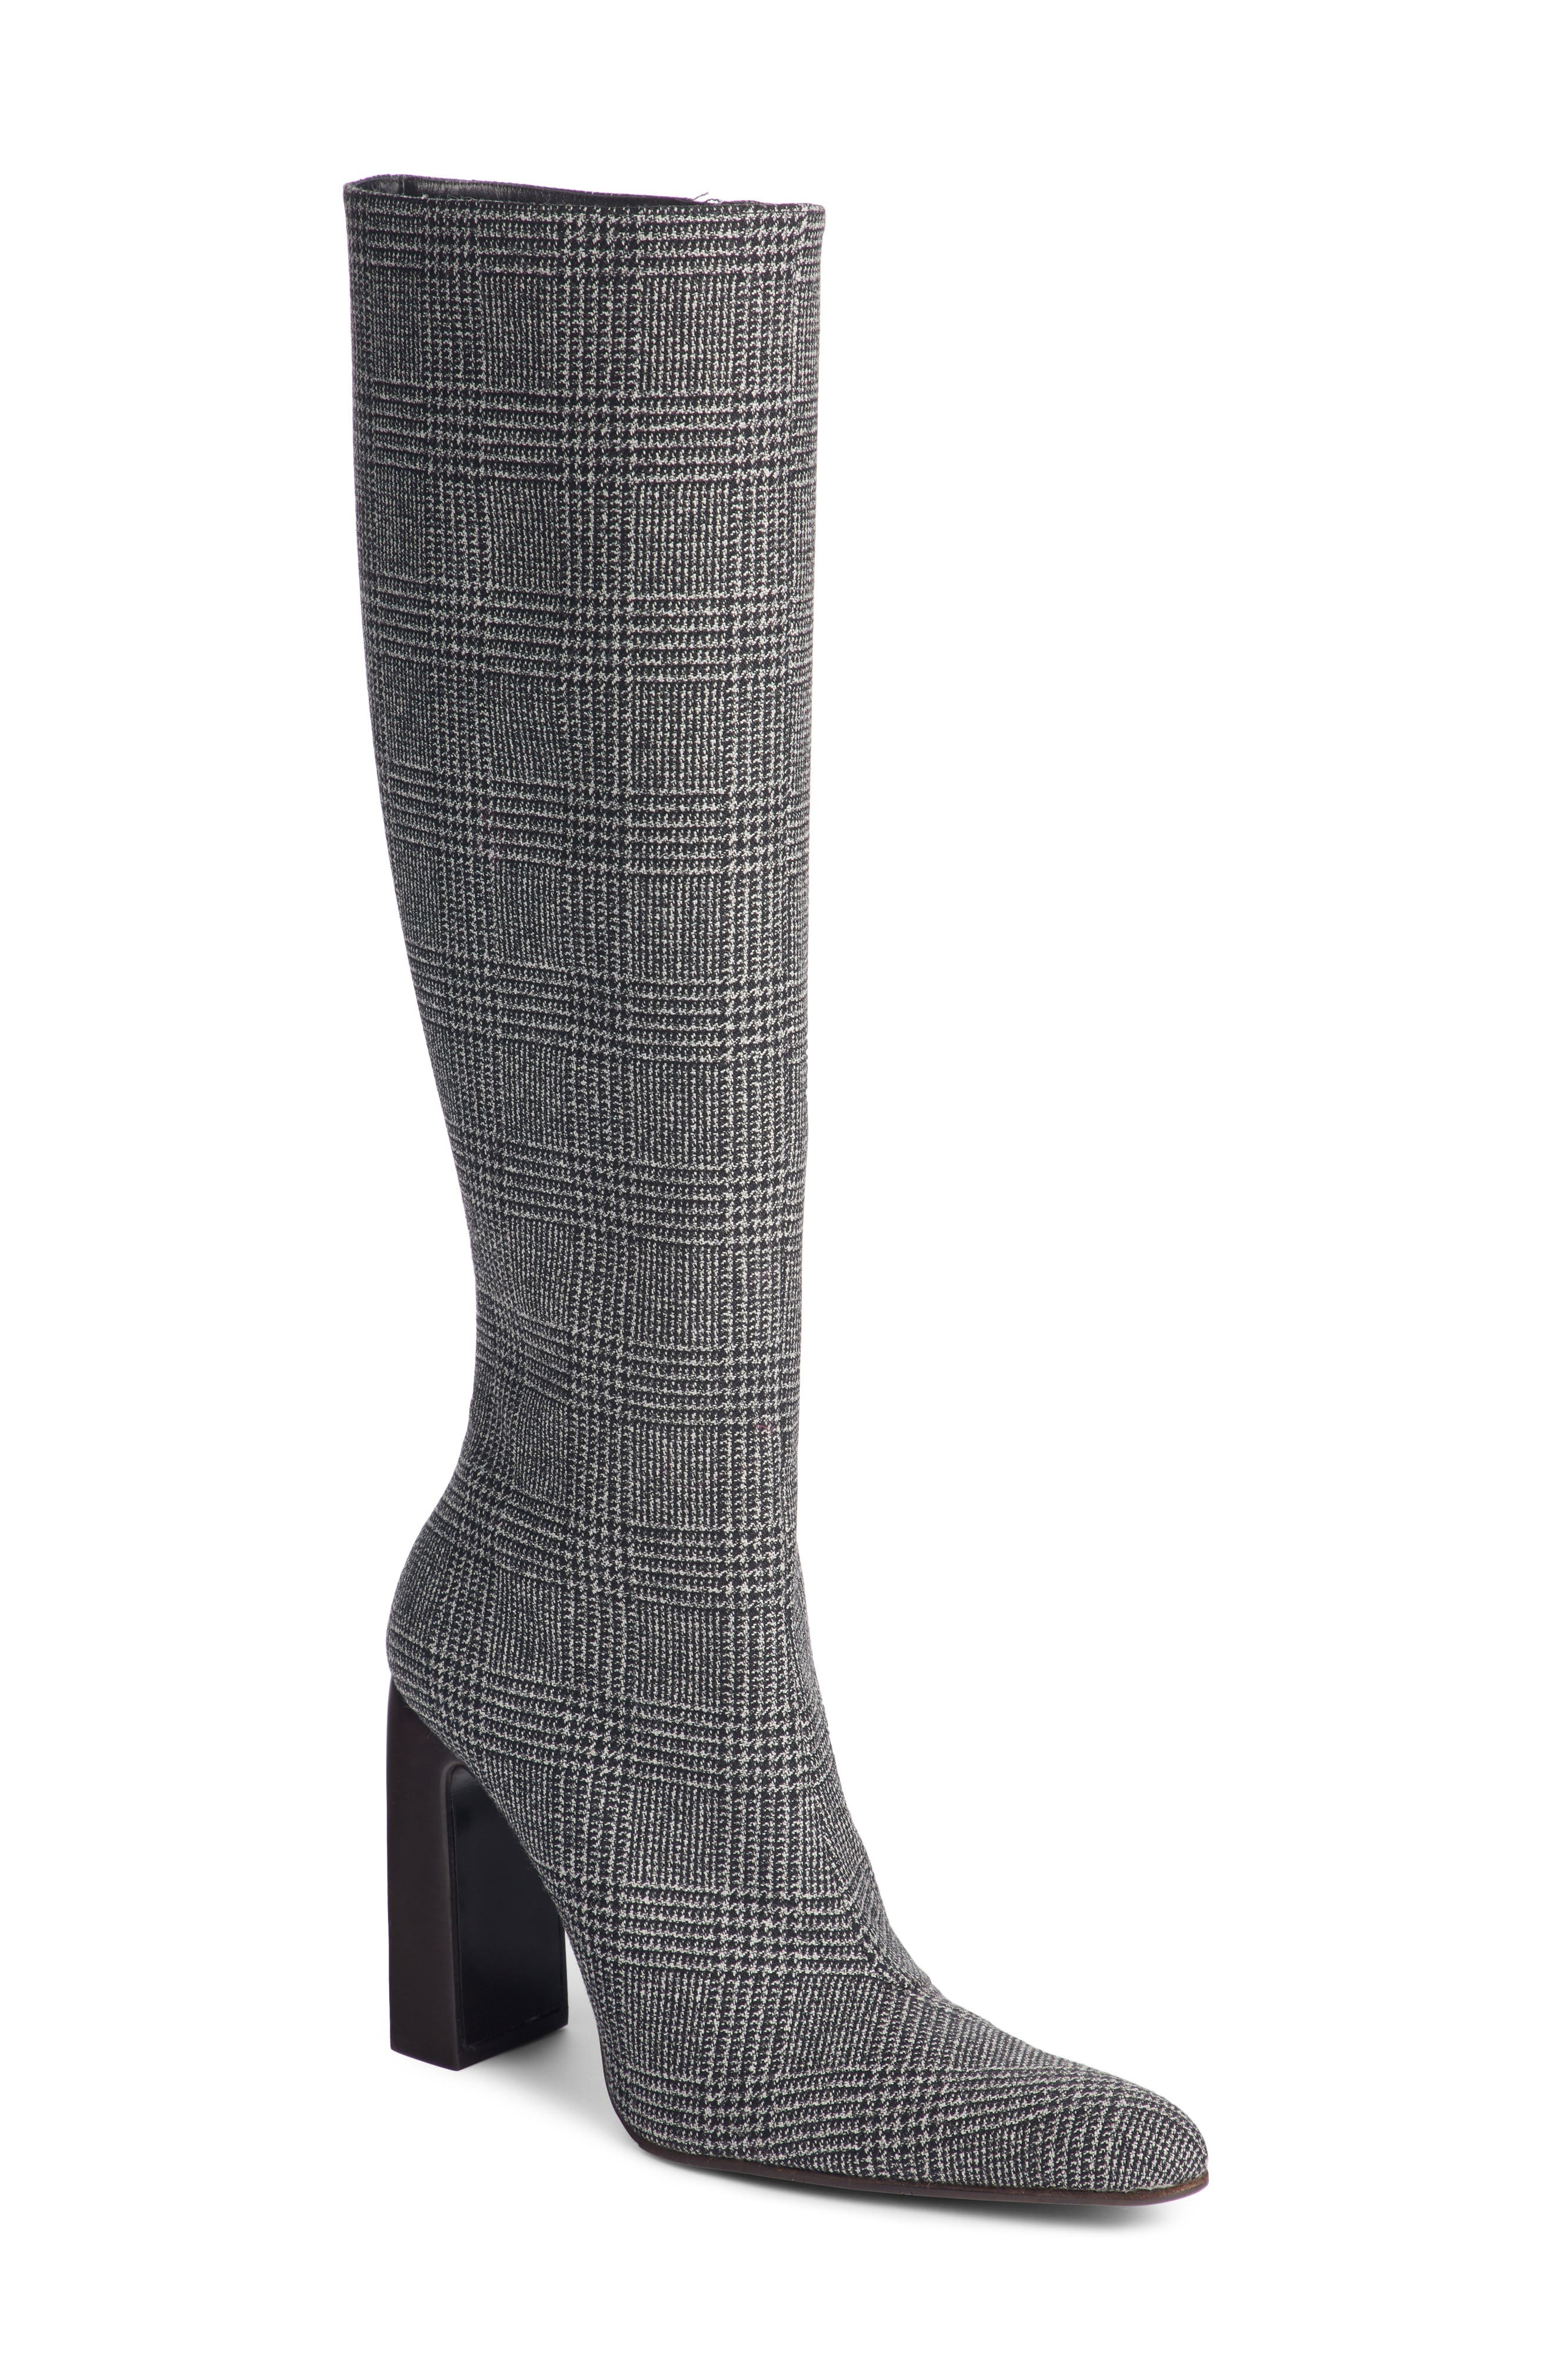 Prince of Wales Knee High Boot,                         Main,                         color, GREY